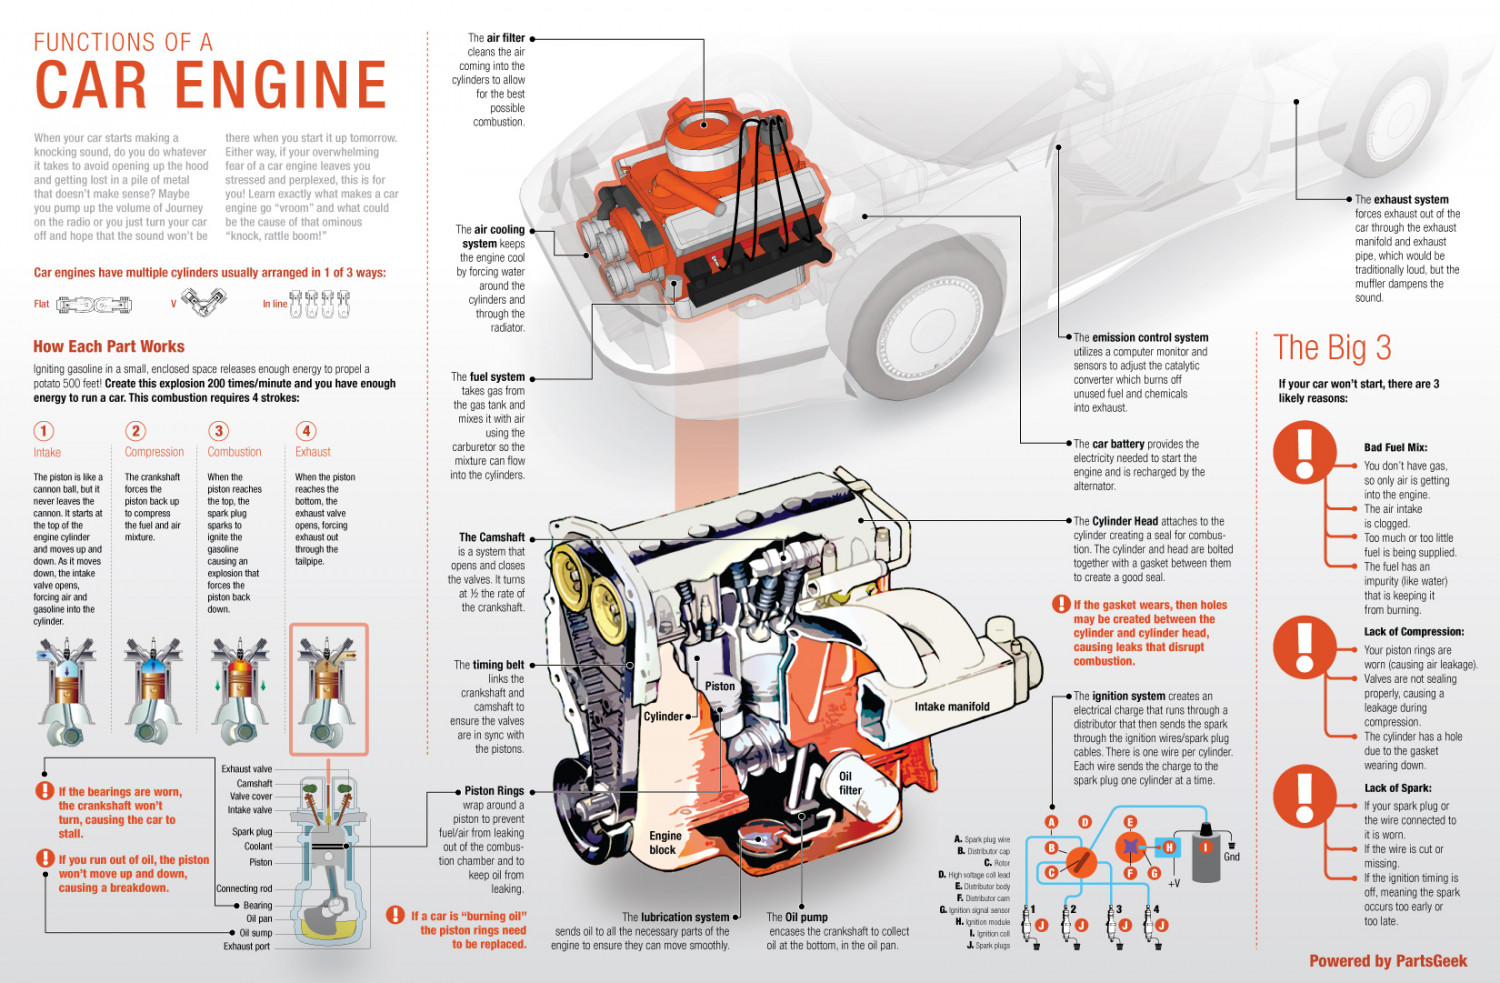 What's Going on Under Your Hood Infographic